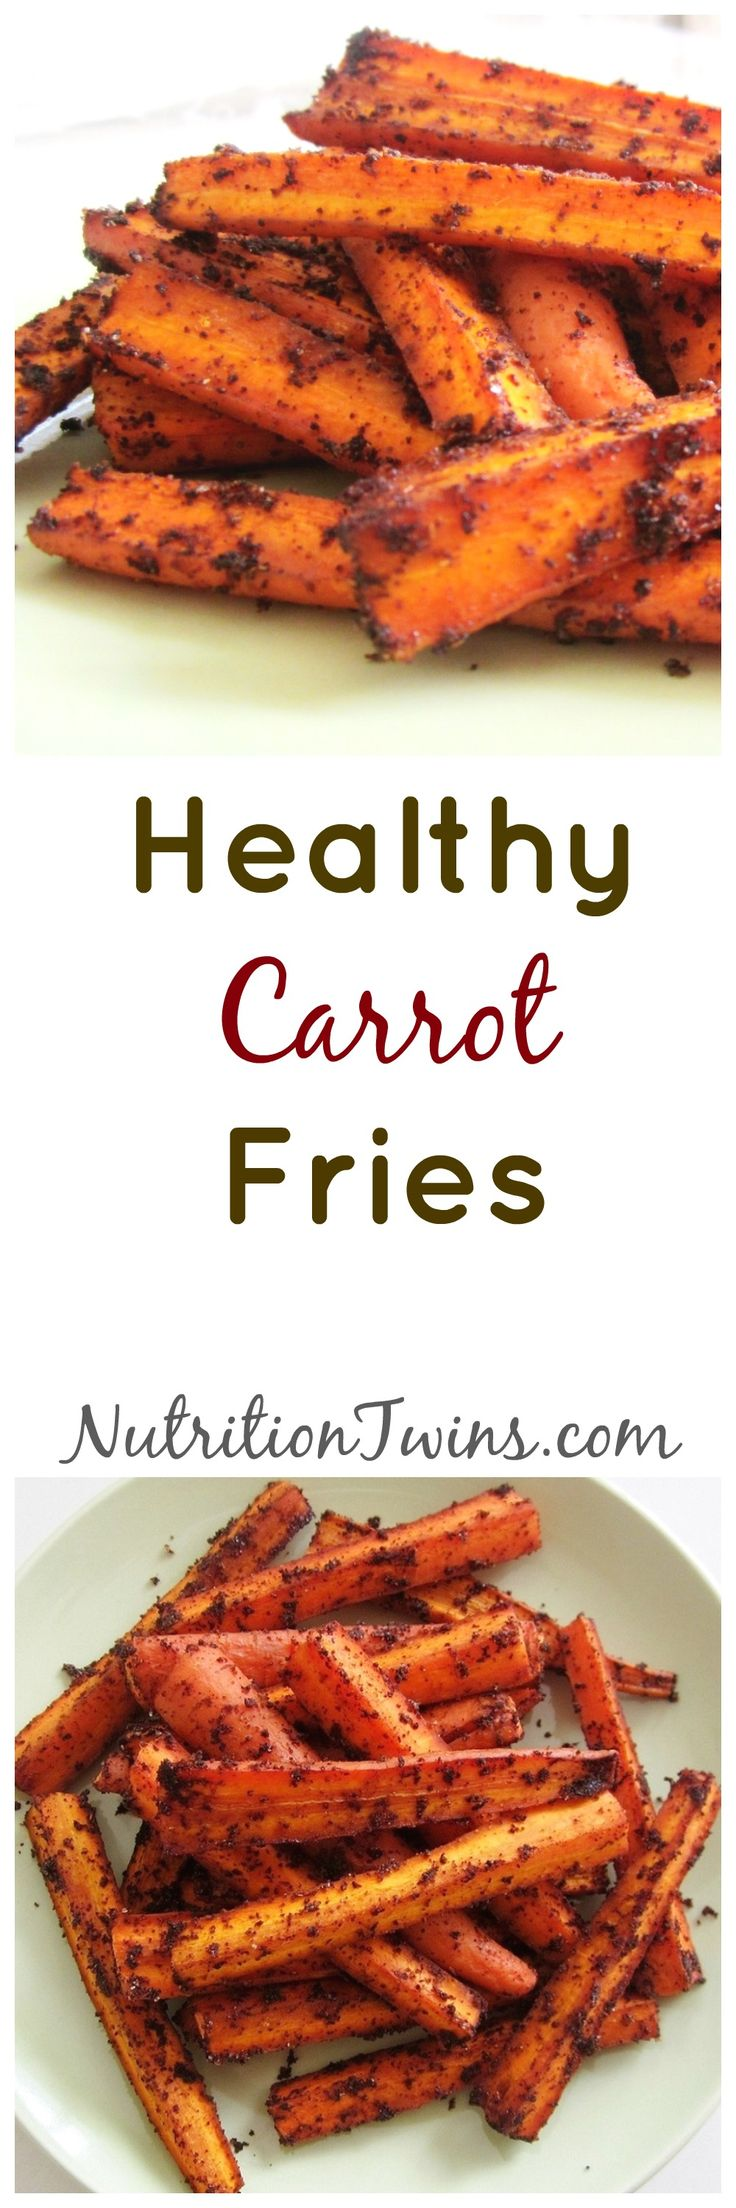 "Carrot ""Fries"" 